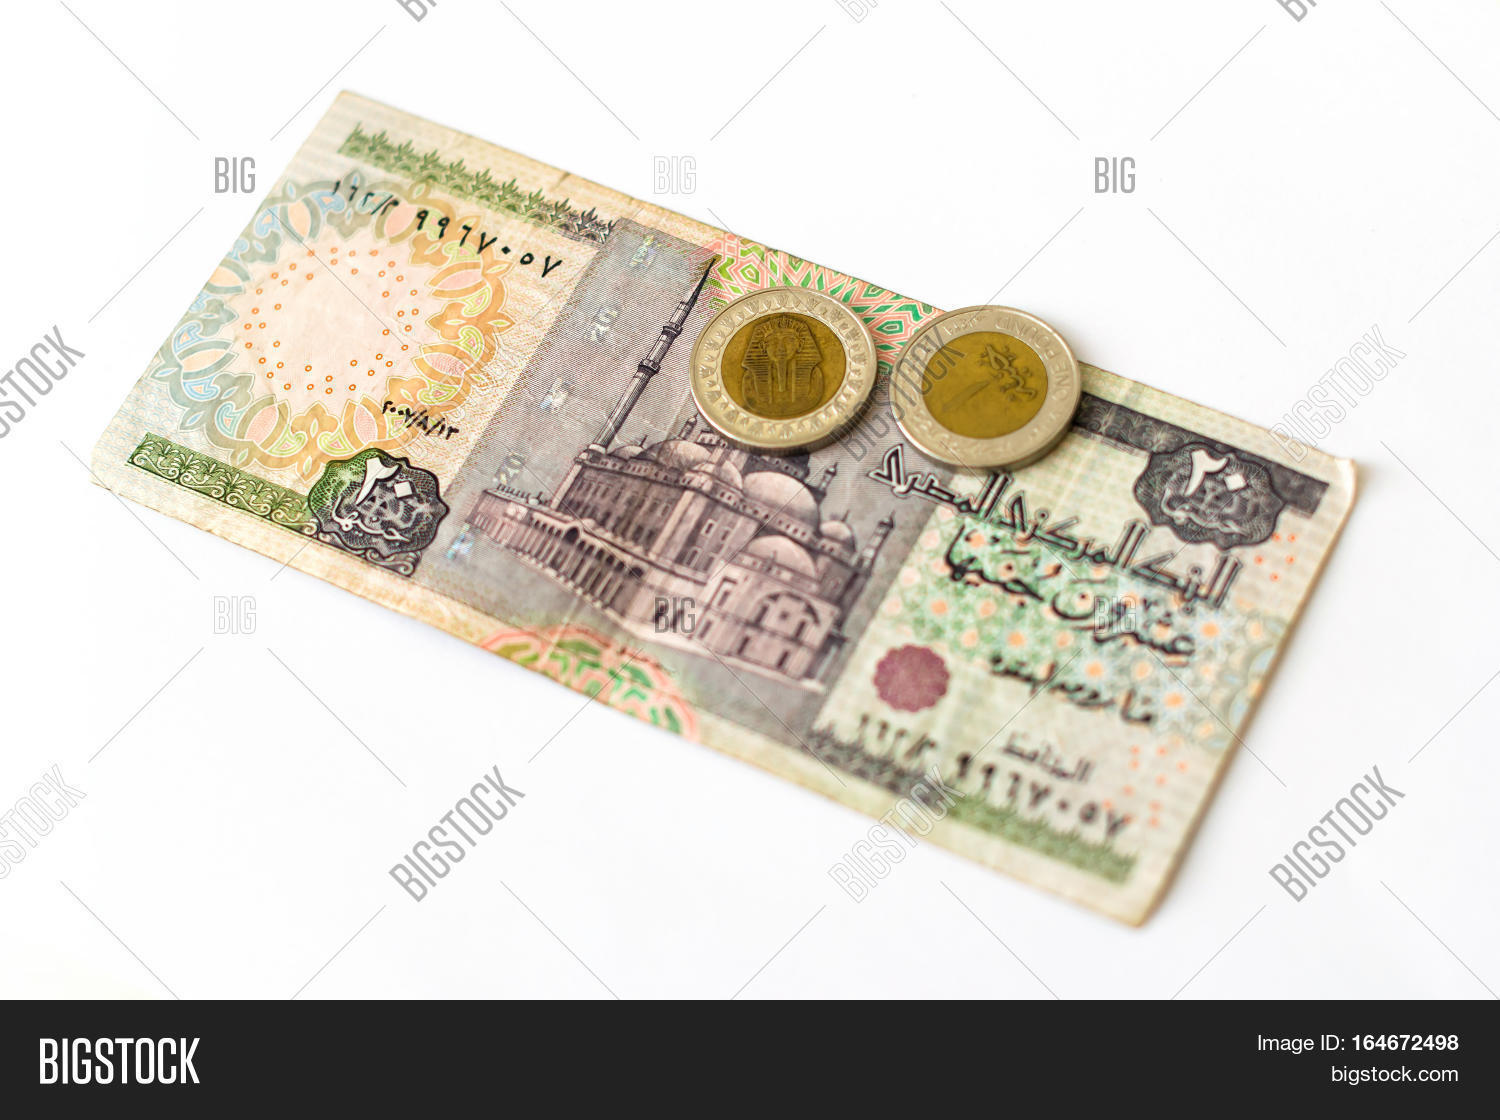 20 Egyptian Pounds Old Image Photo Free Trial Bigstock